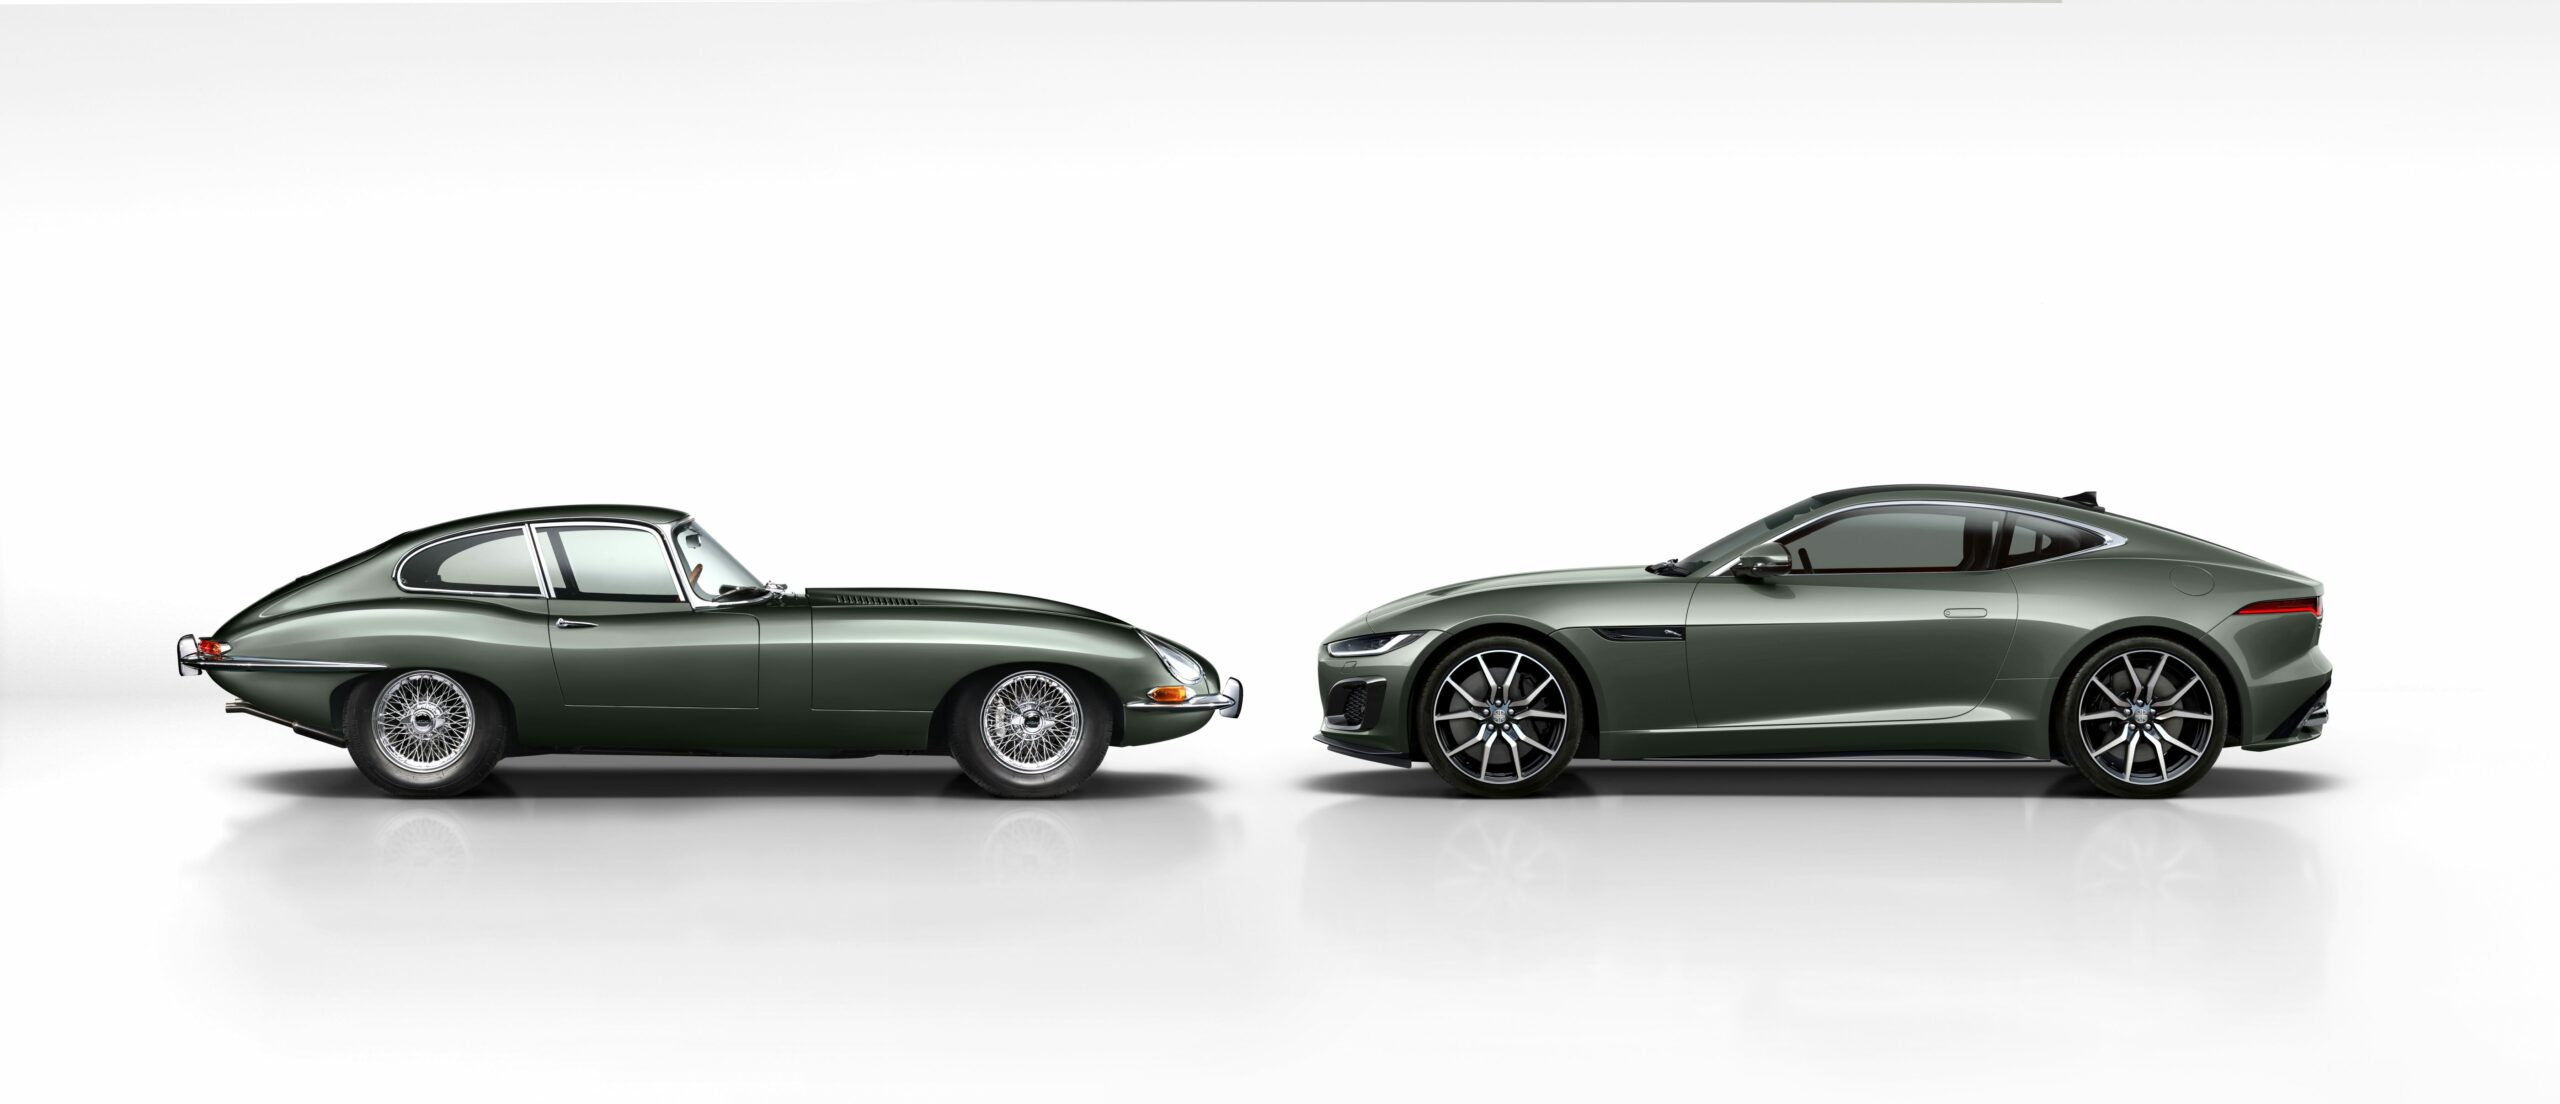 2021 jaguar commercial Redesign and Concept